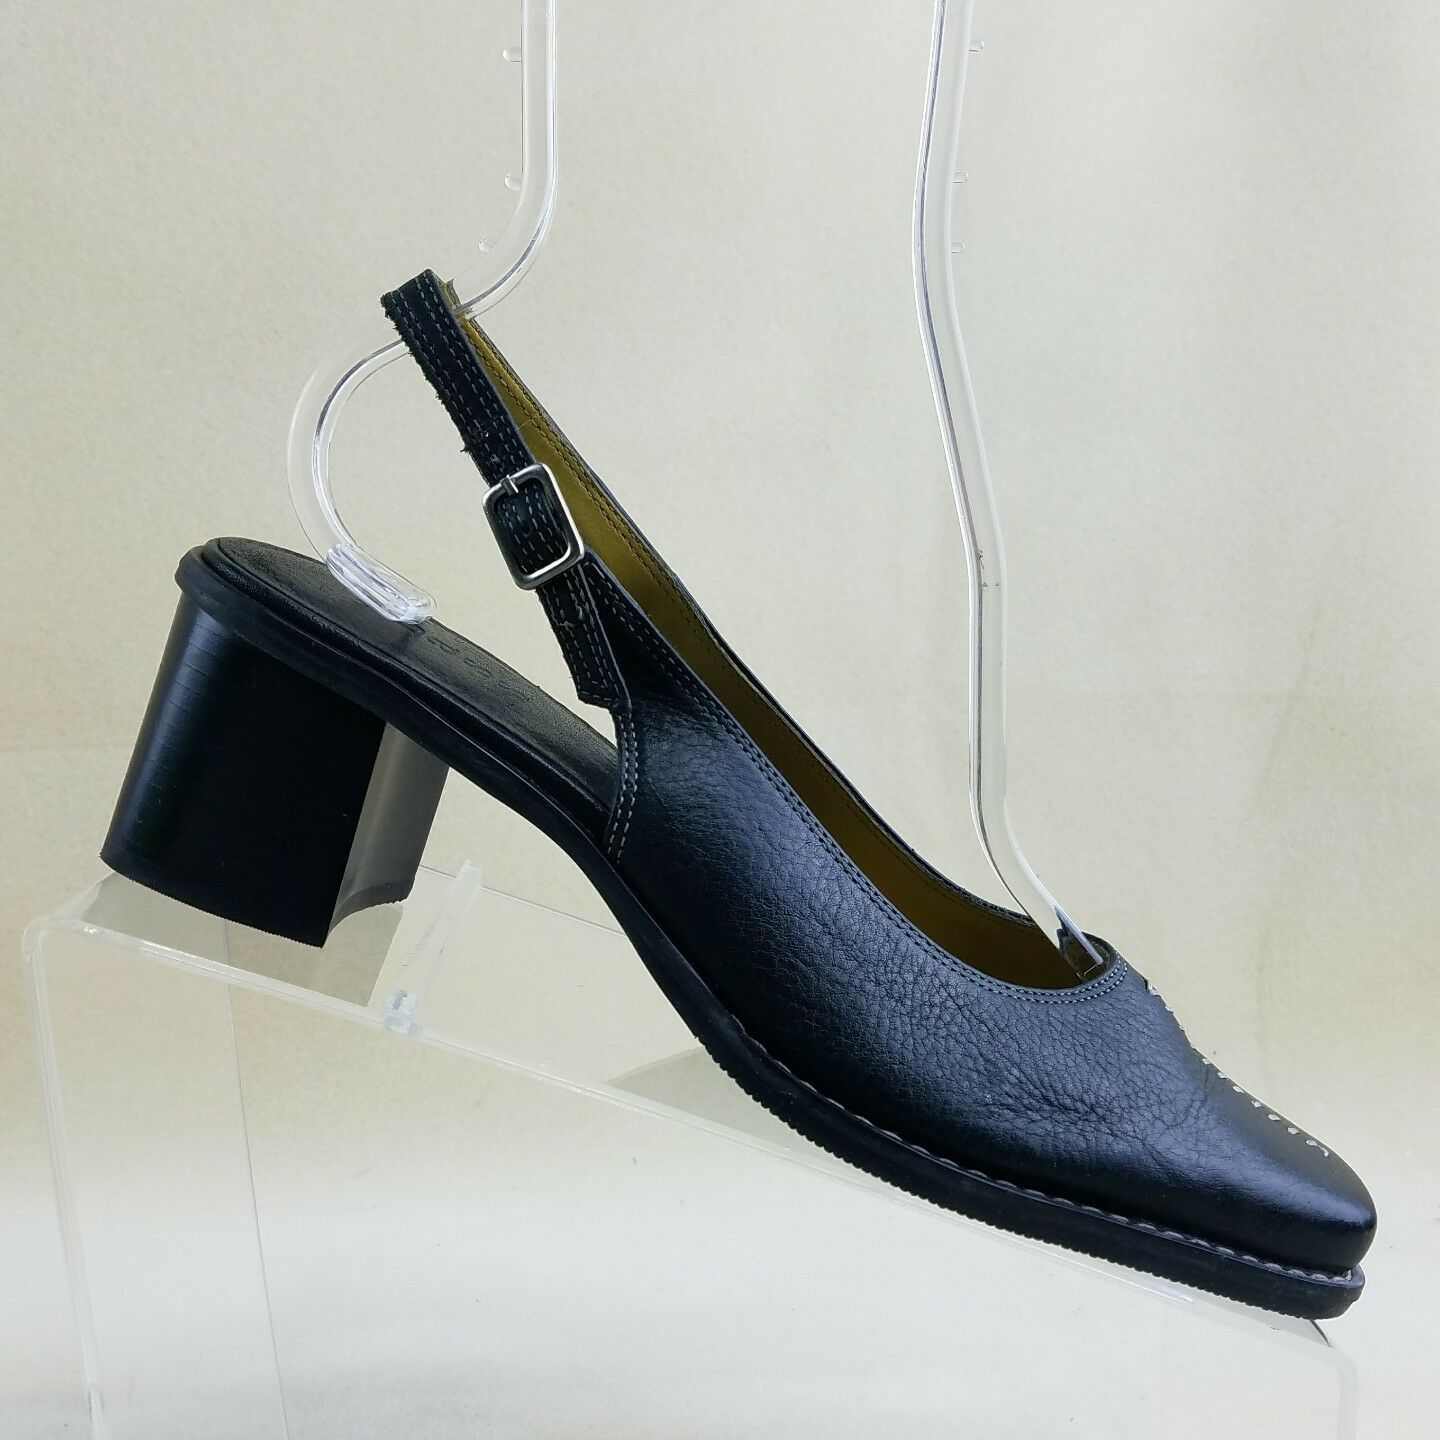 Bass On Womens Black Leather Slip On Bass Slingback Buckle Heels Clogs Shoes 7.5M #G18 f6619f